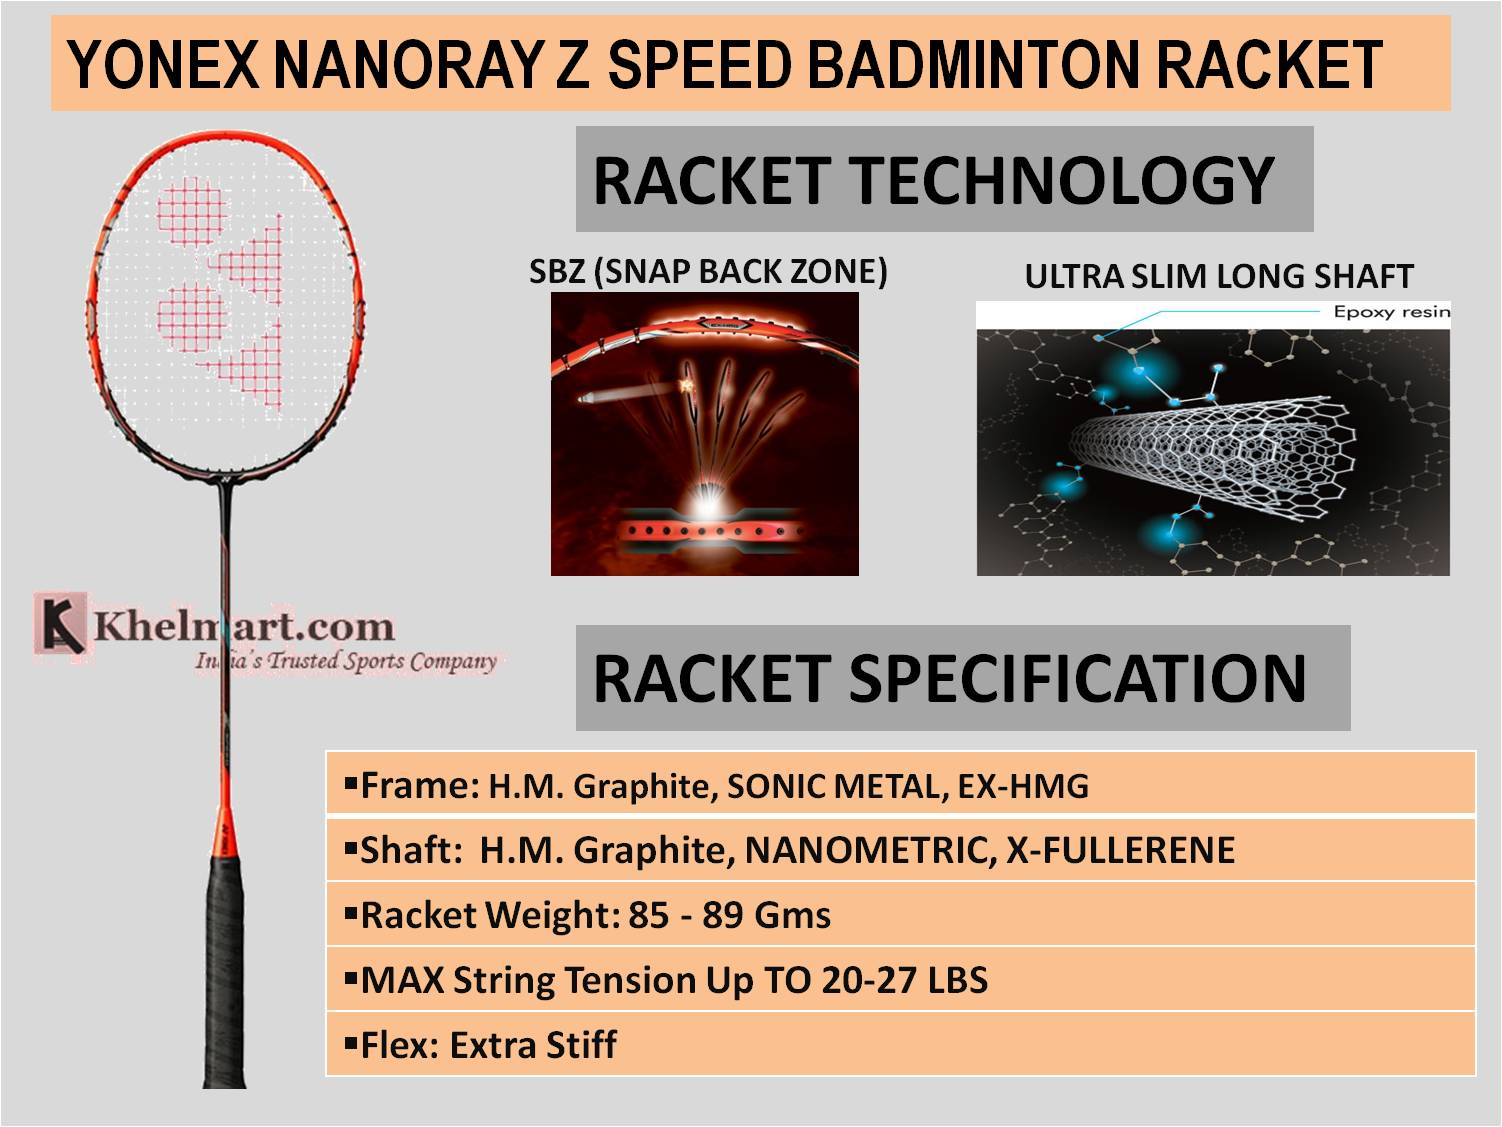 YONEX NANORAY Z SPEED BADMINTON RACKsET.jpg